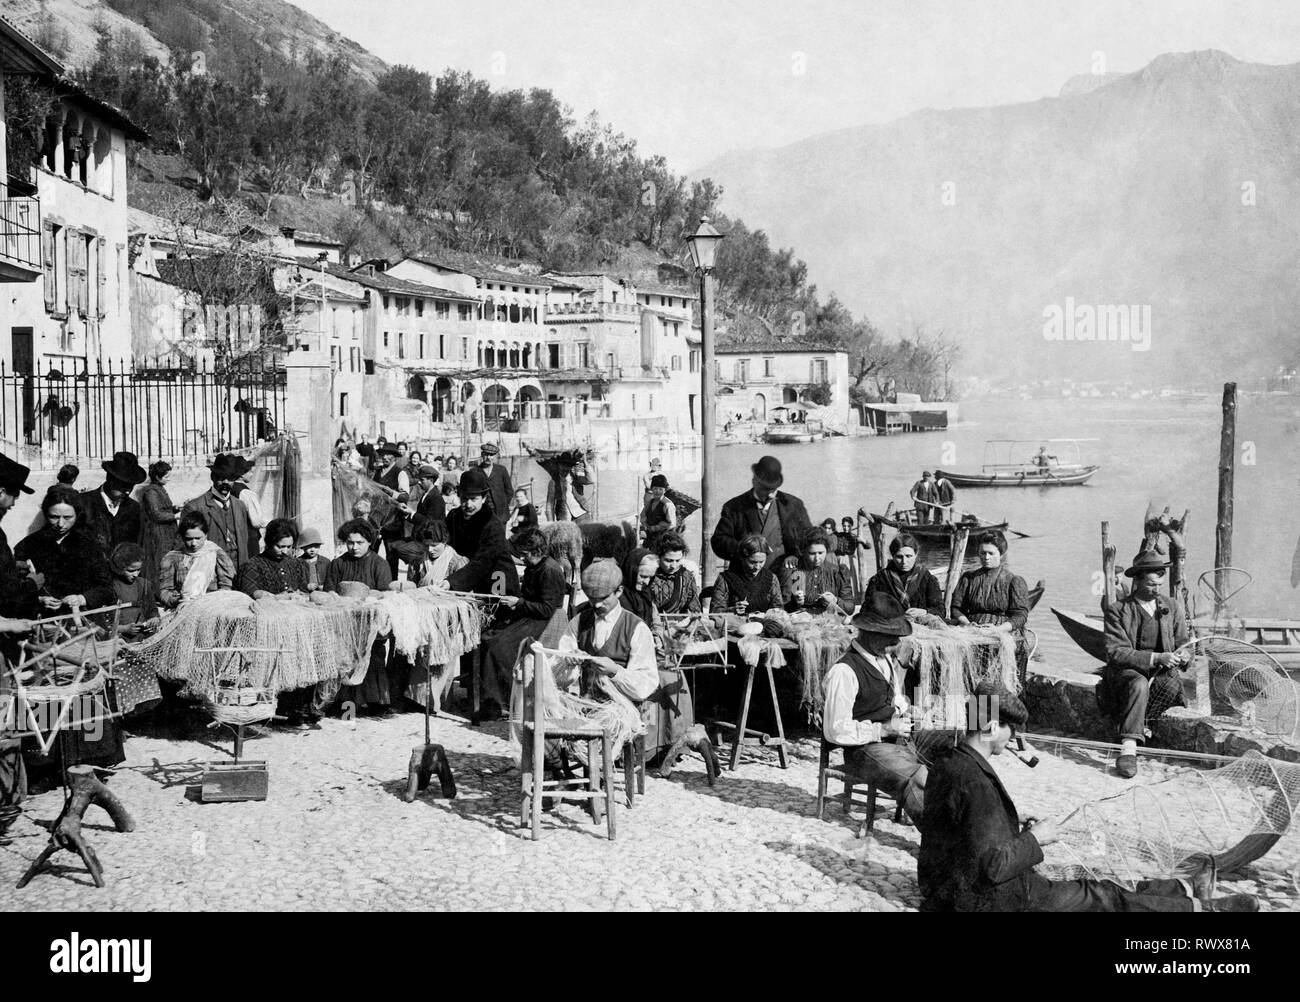 working fishing nets, lago d'iseo, lombardy, italy 1940 - Stock Image